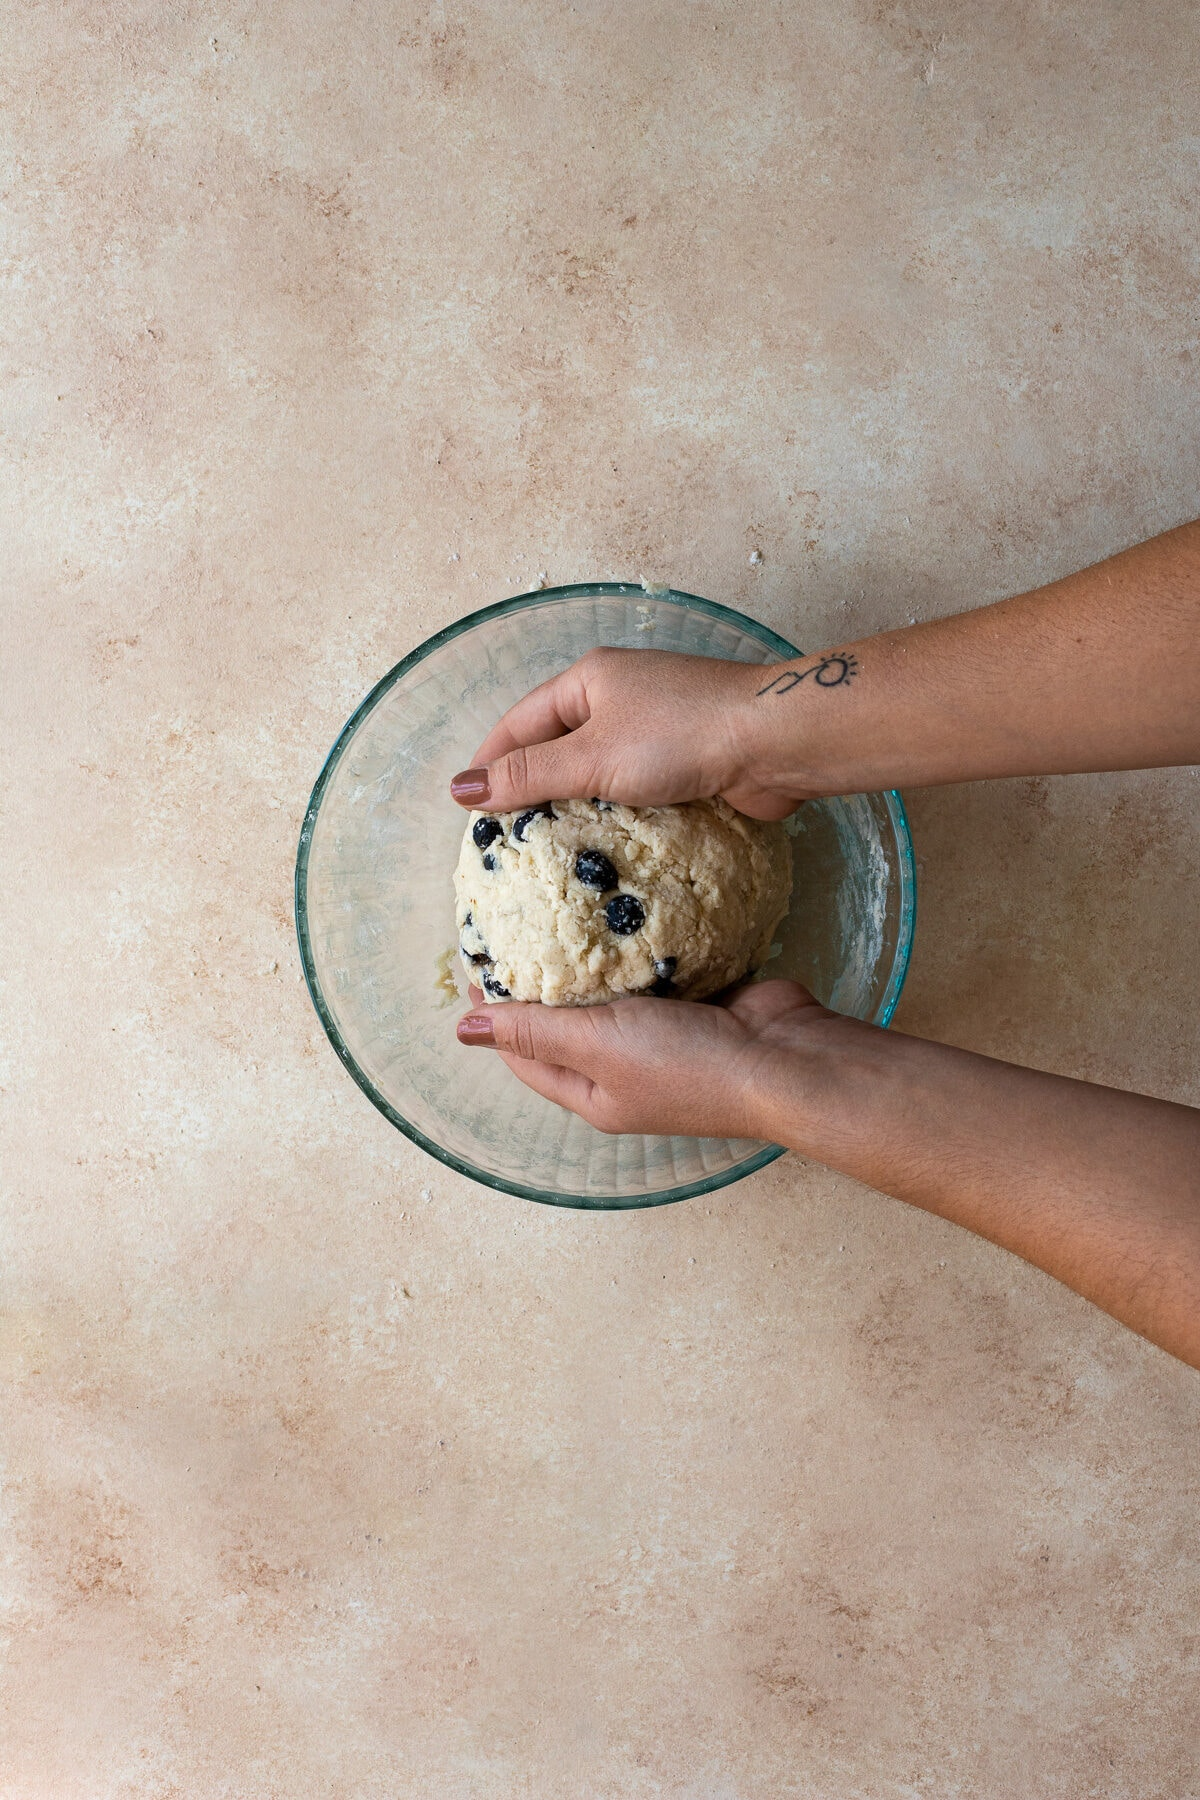 Process shot of kneading scone dough together.